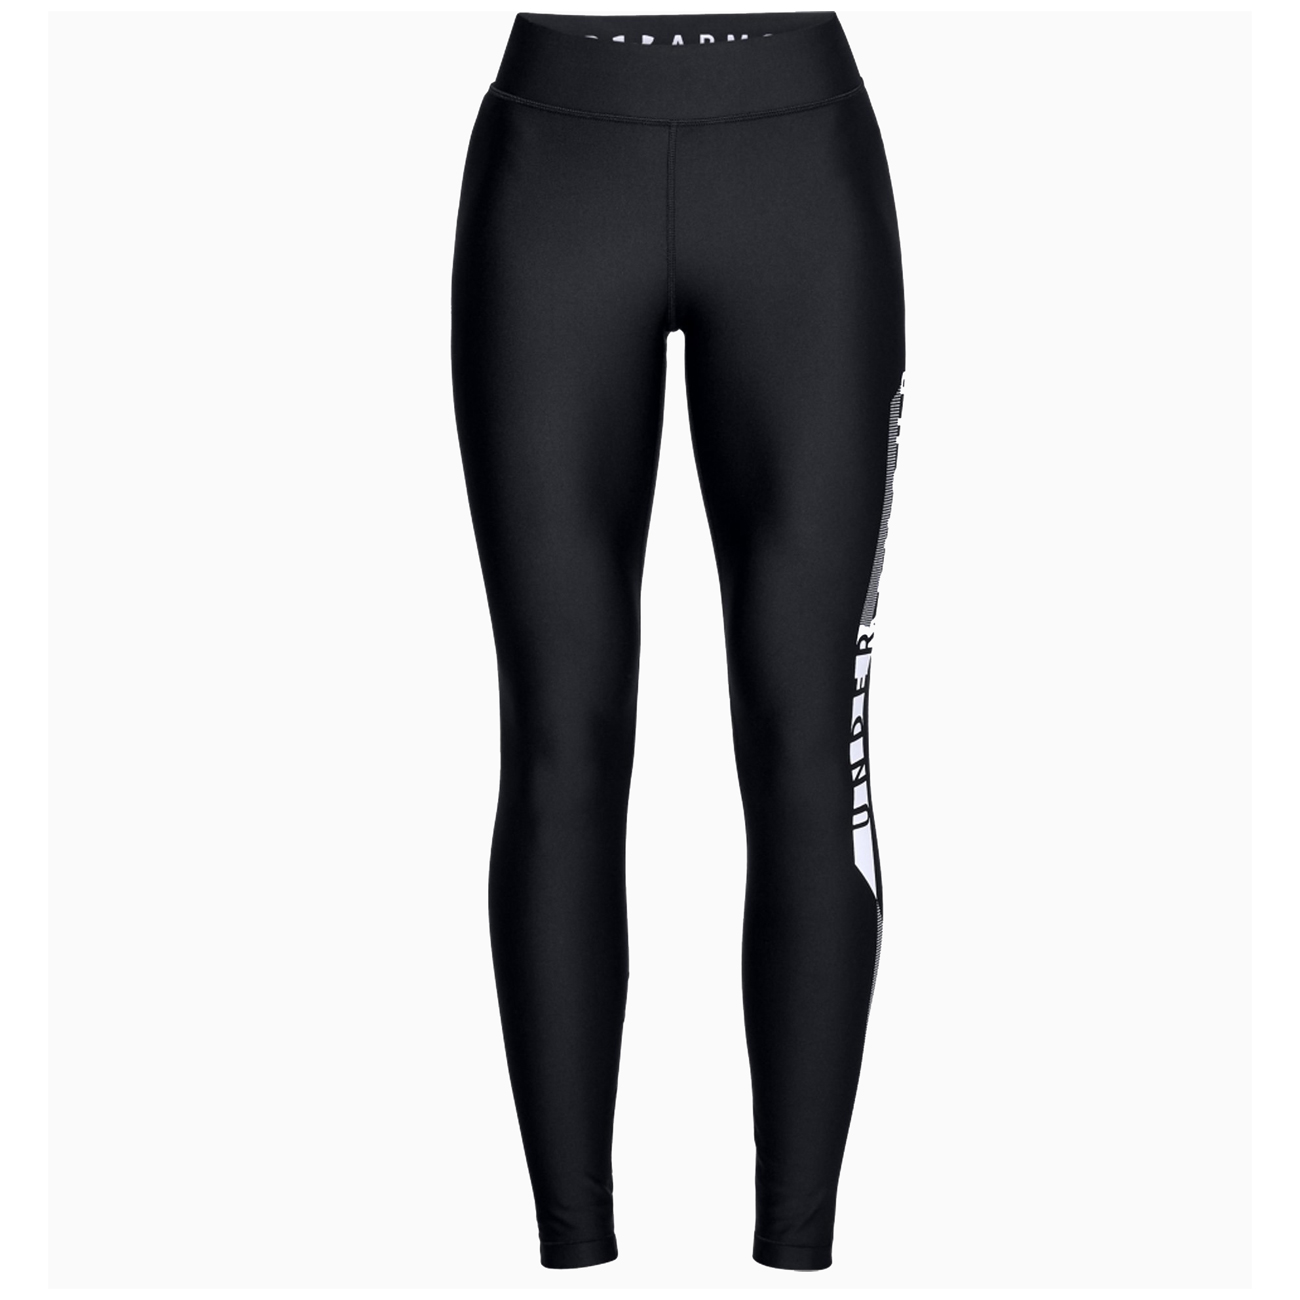 An image of Under Armour Women's HeatGear® Armour Graphic Leggings- Black/Silver - XS, BLAC...